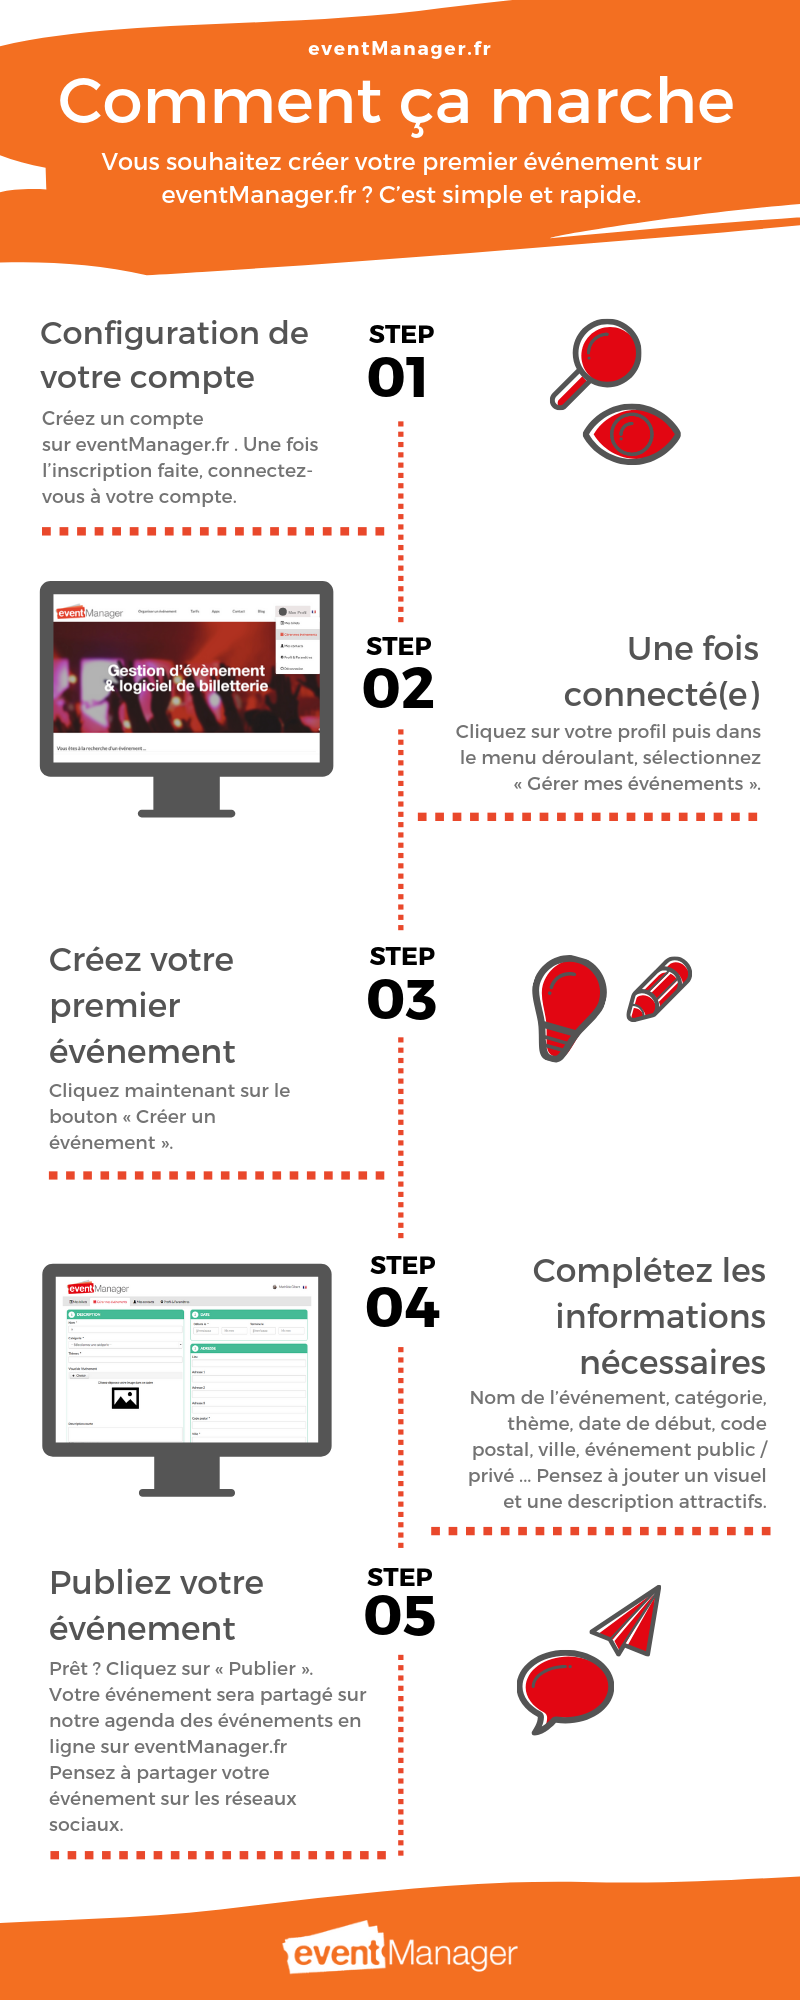 comment creer et gerer des evenements eventManager.fr